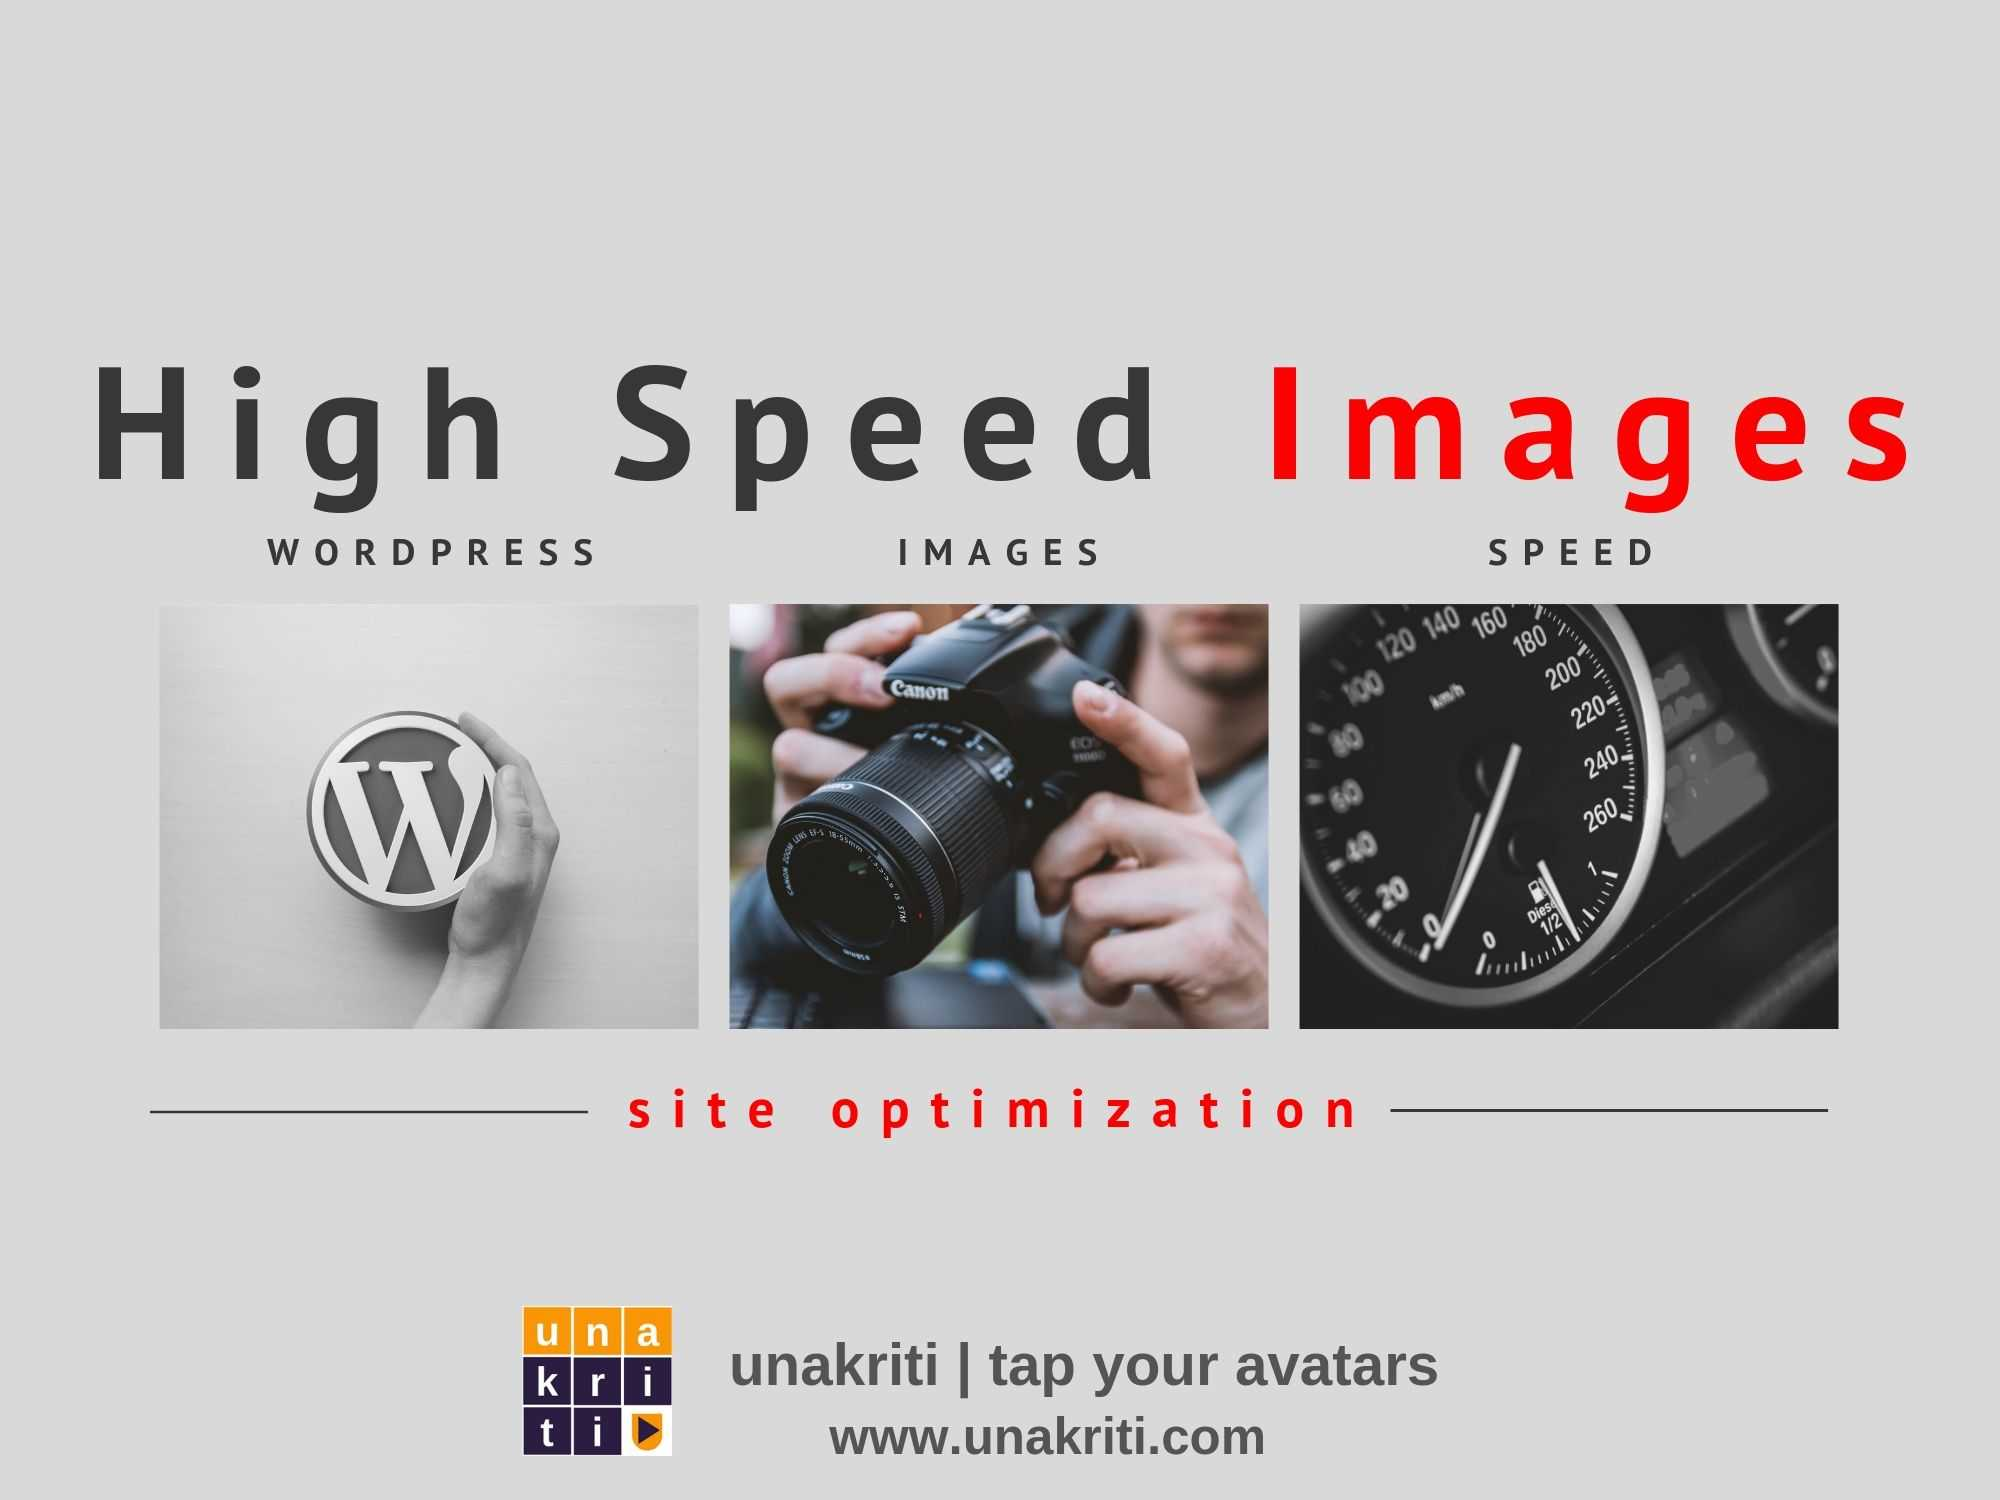 Why optimize images and offload media library?